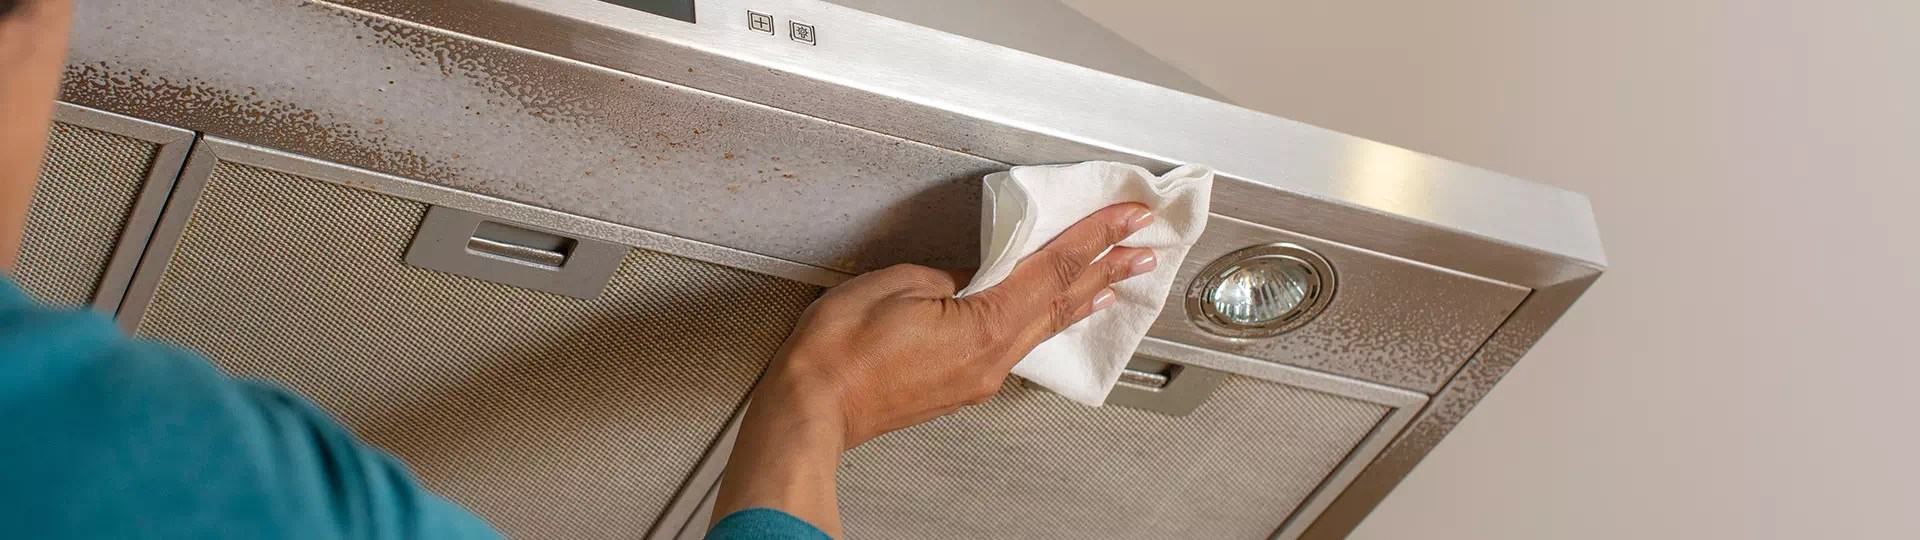 how to clean stove exhaust fan simple